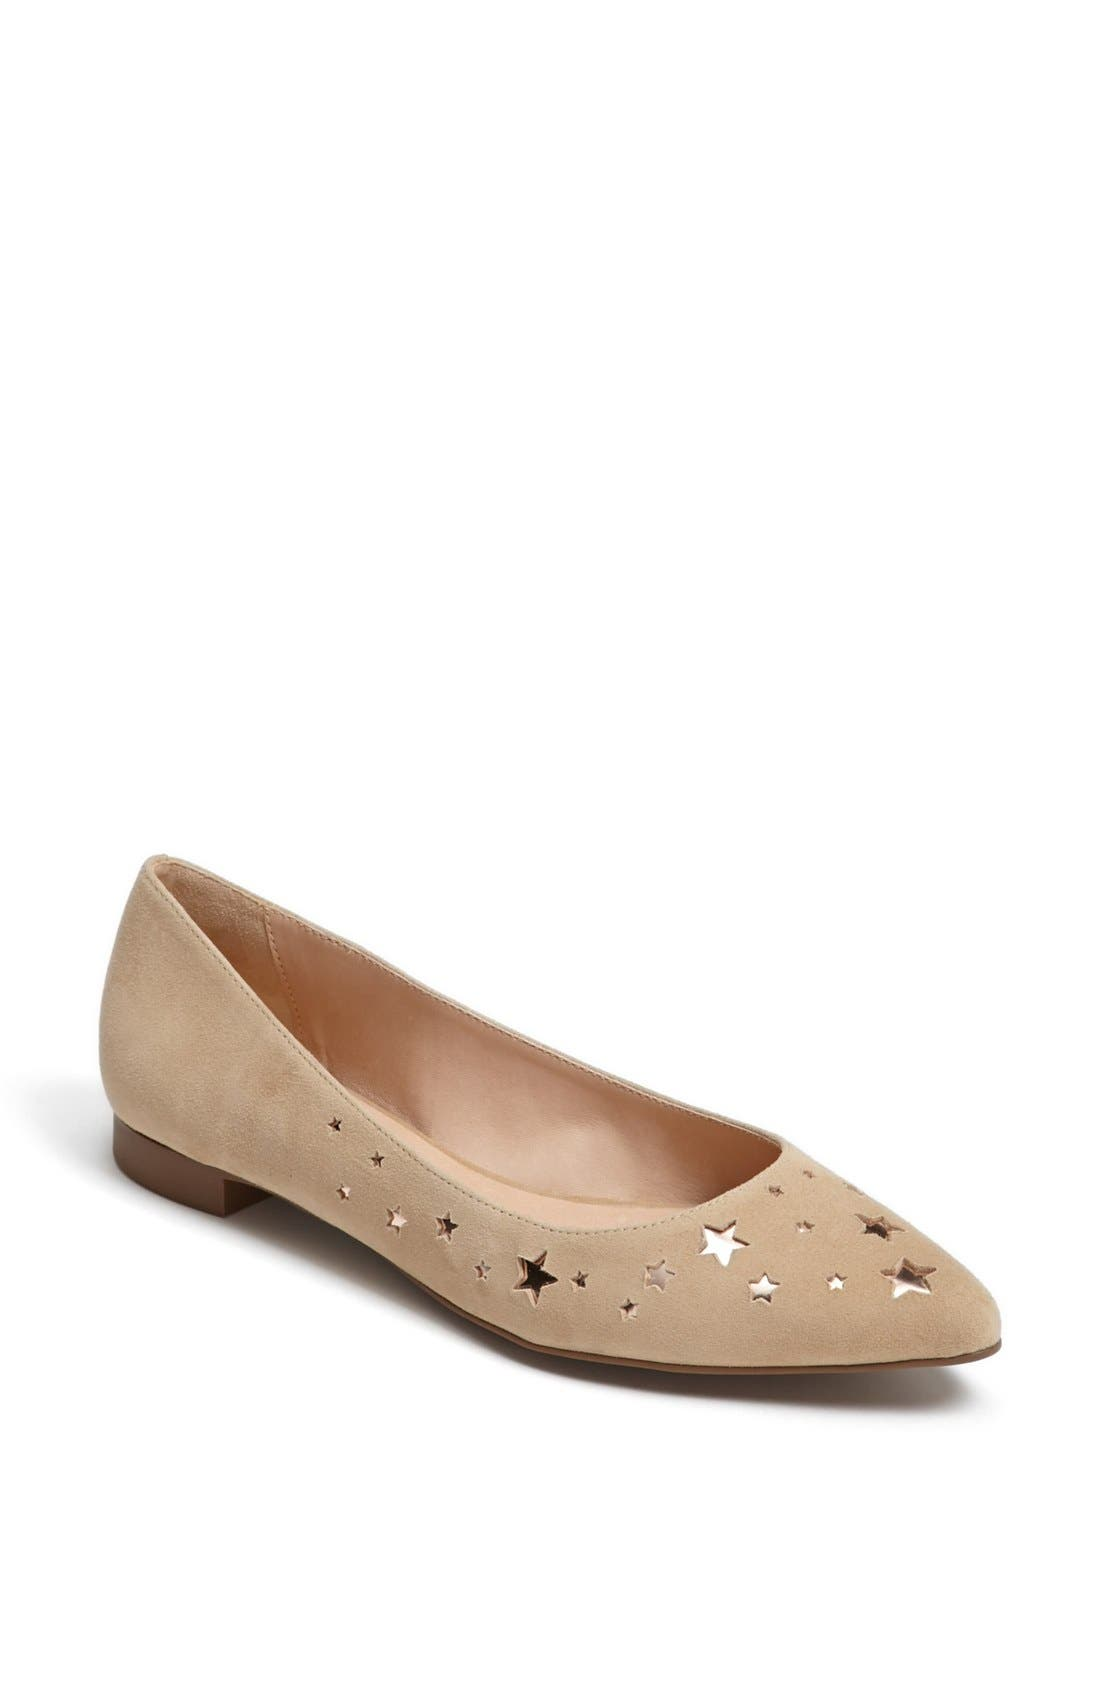 Main Image - kate spade new york 'evennie' flat